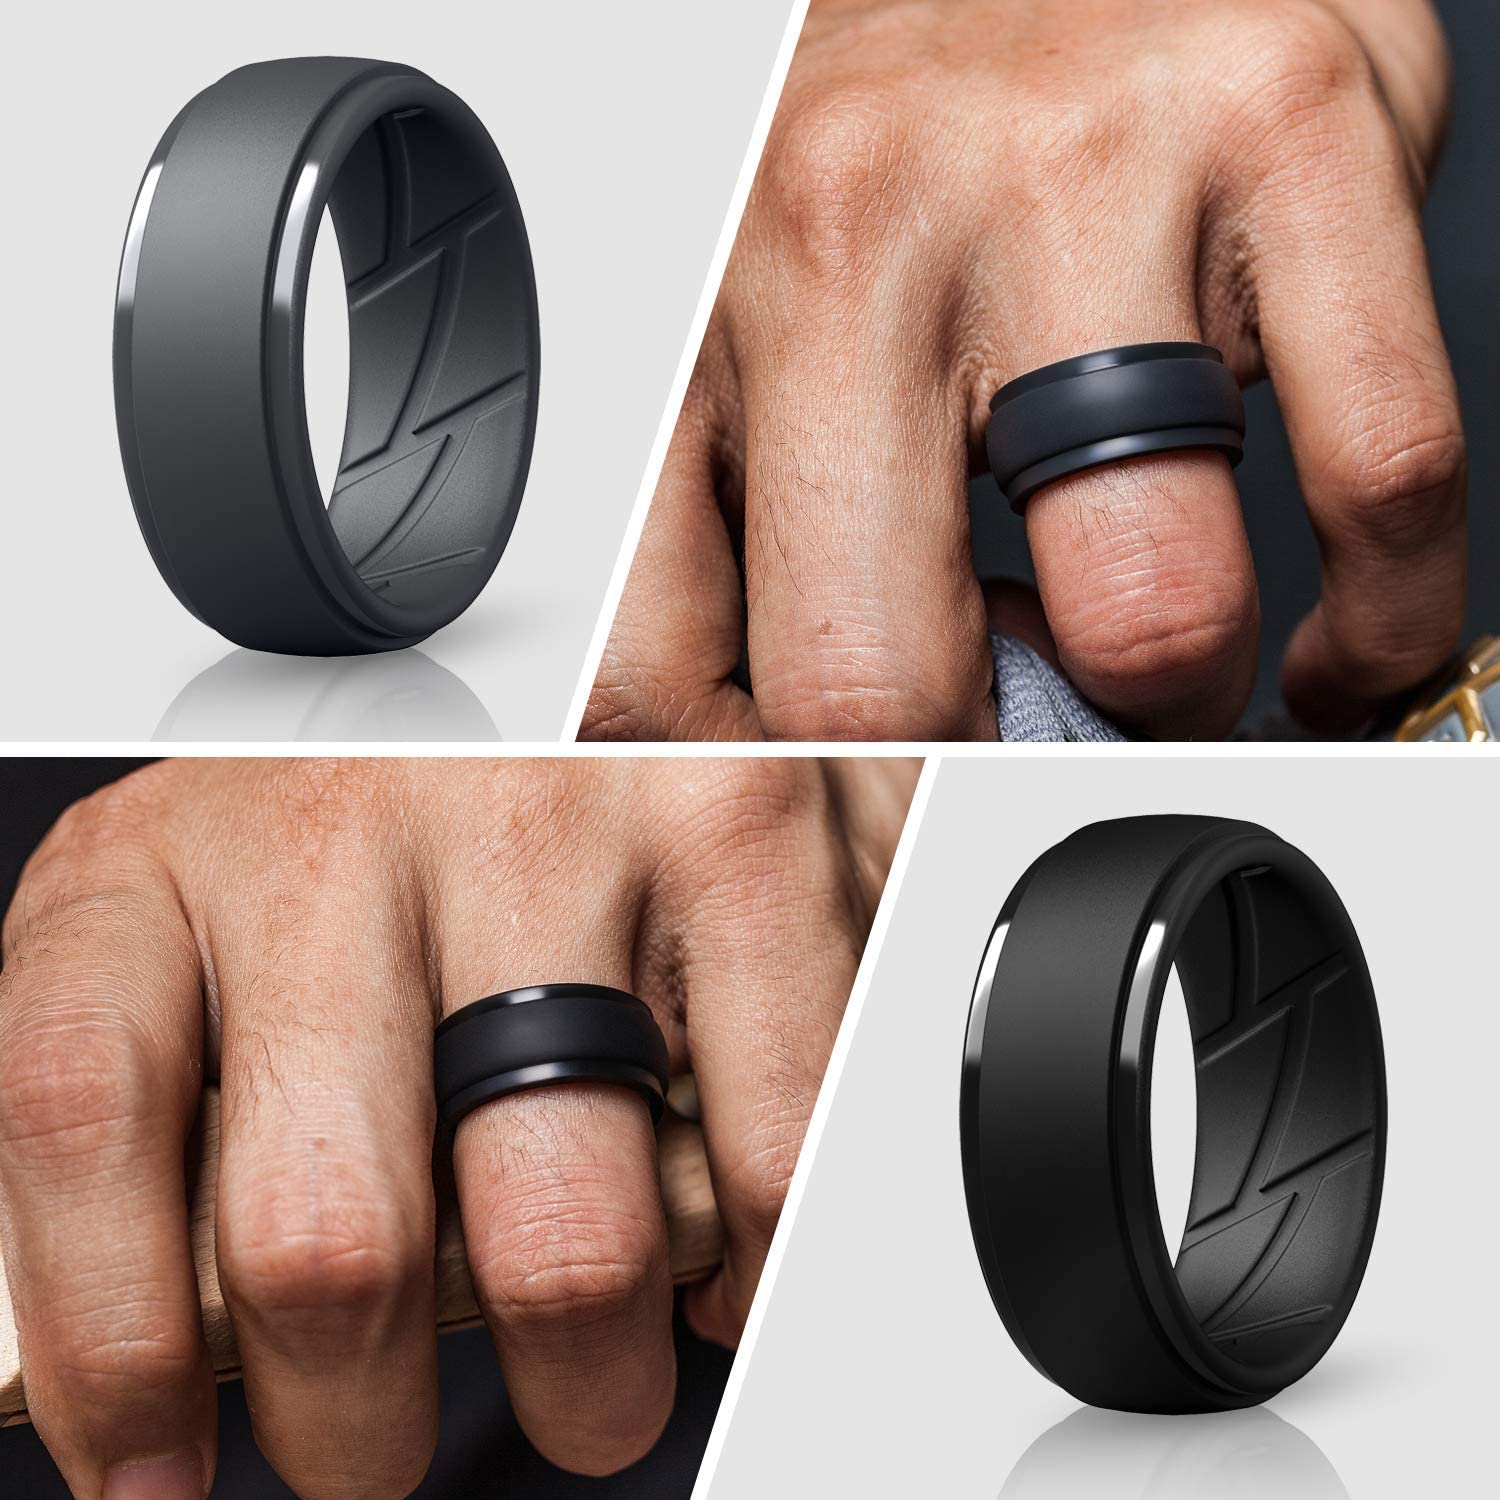 ThunderFit Silicone Wedding Ring for Men 10mm Wide 2.5mm Thick Breathable with Air Flow Grooves